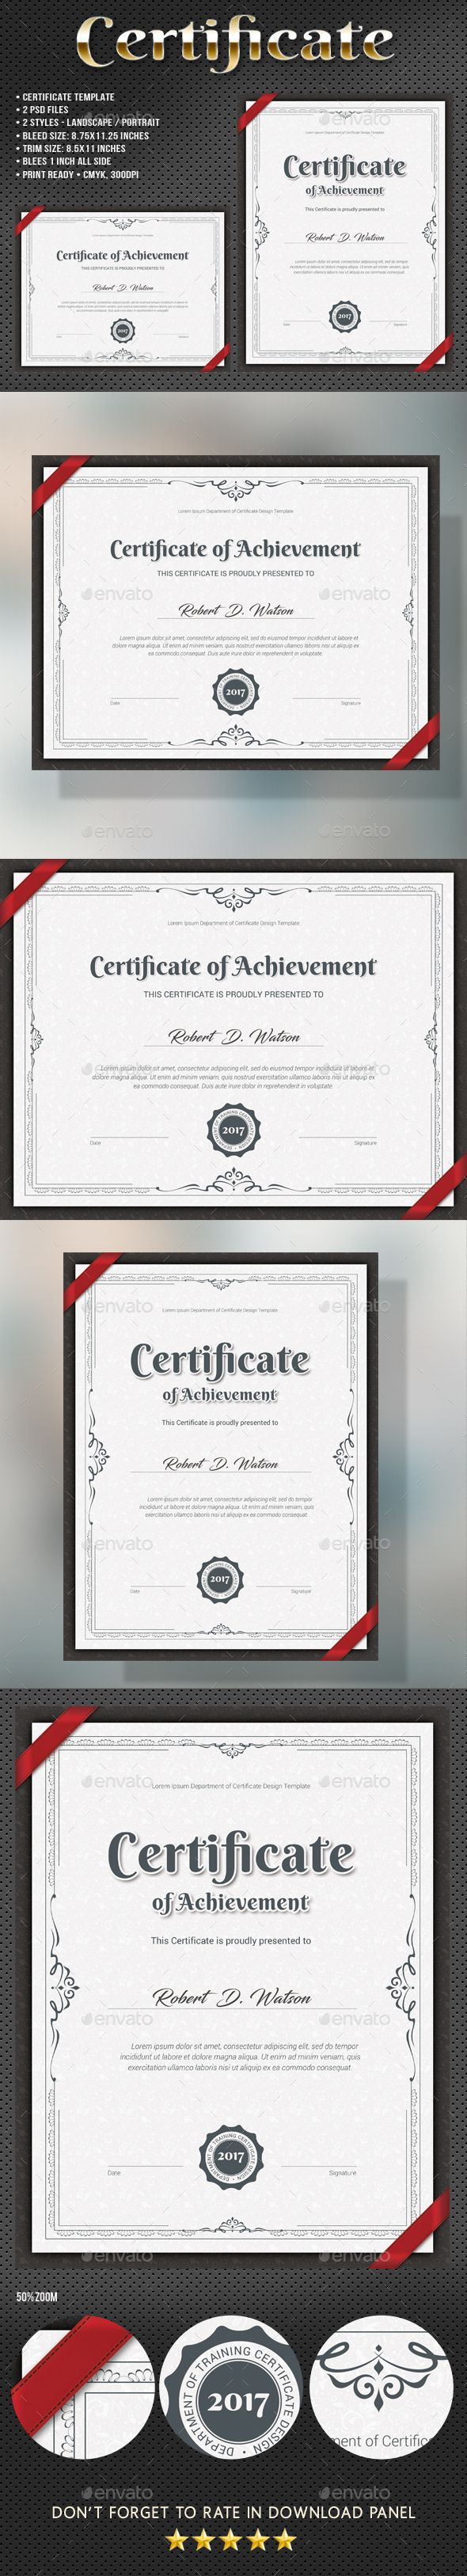 #Certificate - Certificates #Stationery Download here: https://graphicriver.net/item/certificate/19315710?ref=alena994